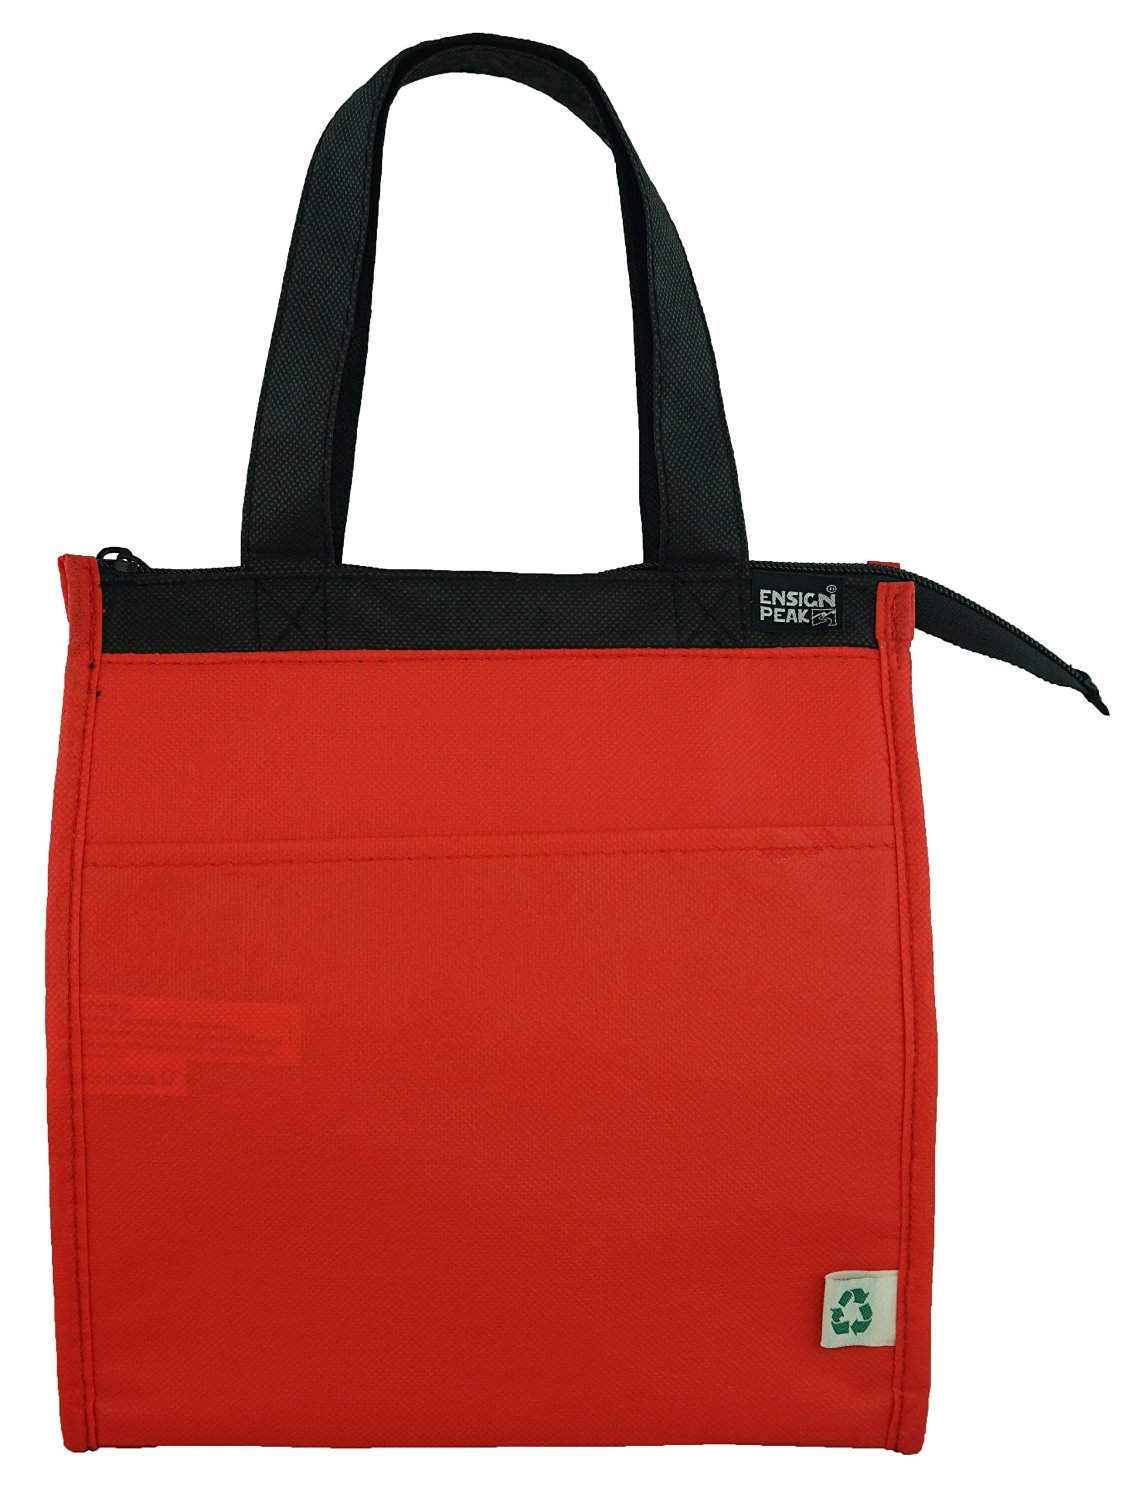 Insulated zippered Hot & Cold Cooler Tote - Small